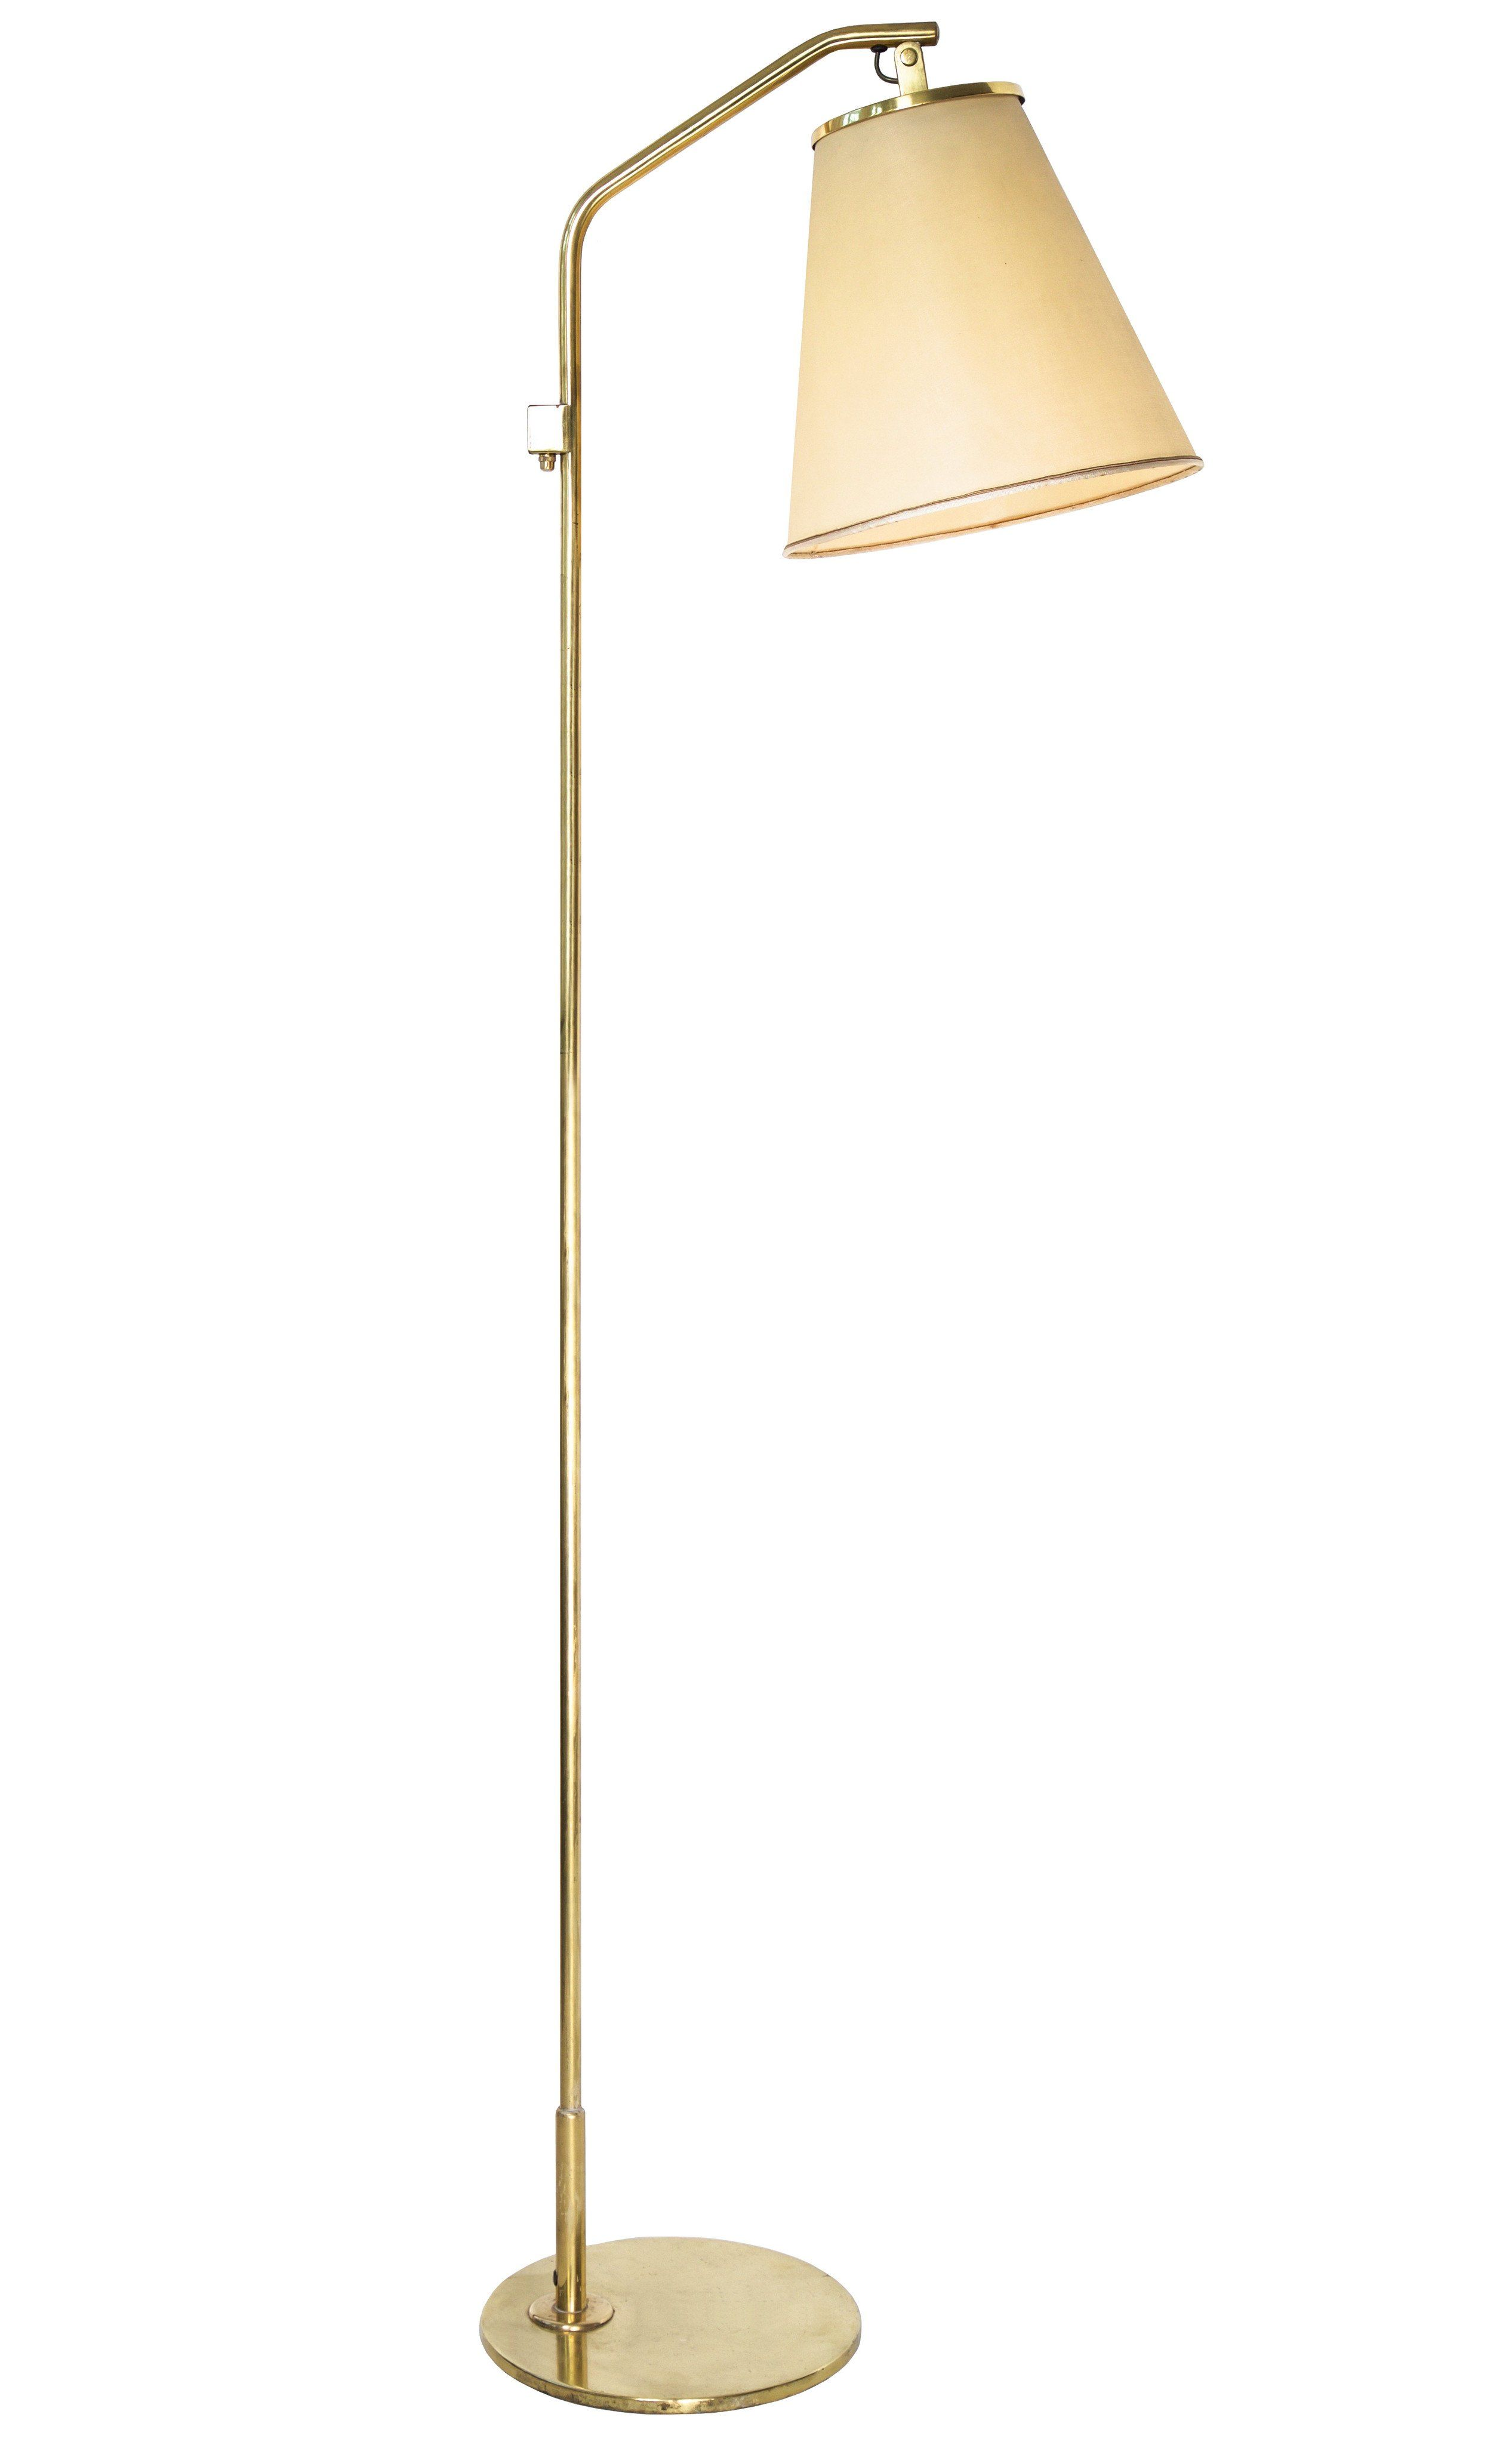 Paavo Tynell Floor Lamp Model 9613 Taito Oy 1940s The Exchange Int Floor Lamp Lamp Floor Lights